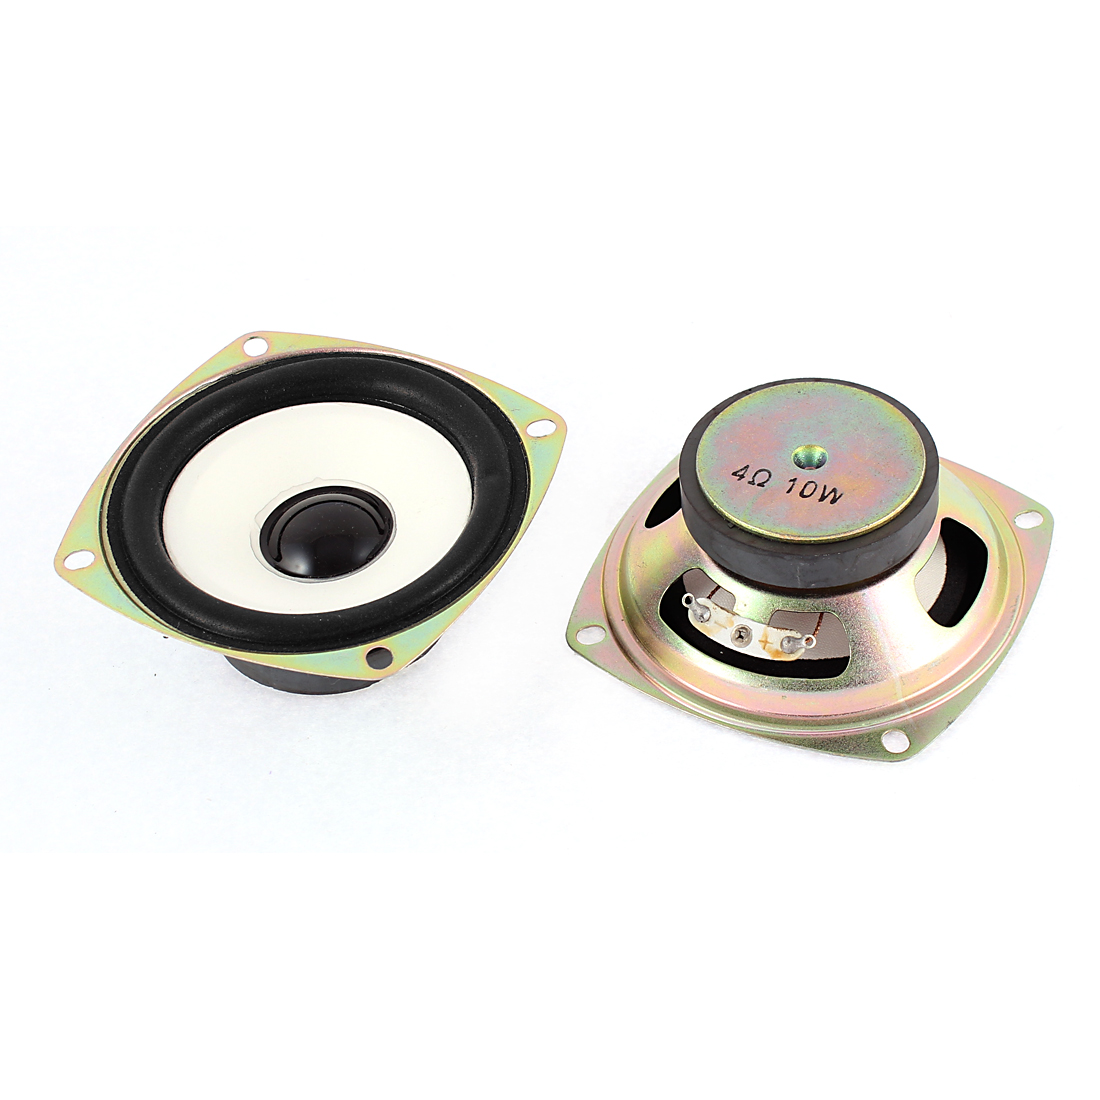 10W 4 Ohm External Magnet Speaker Loudspeaker 75mm x 30mm 2Pcs